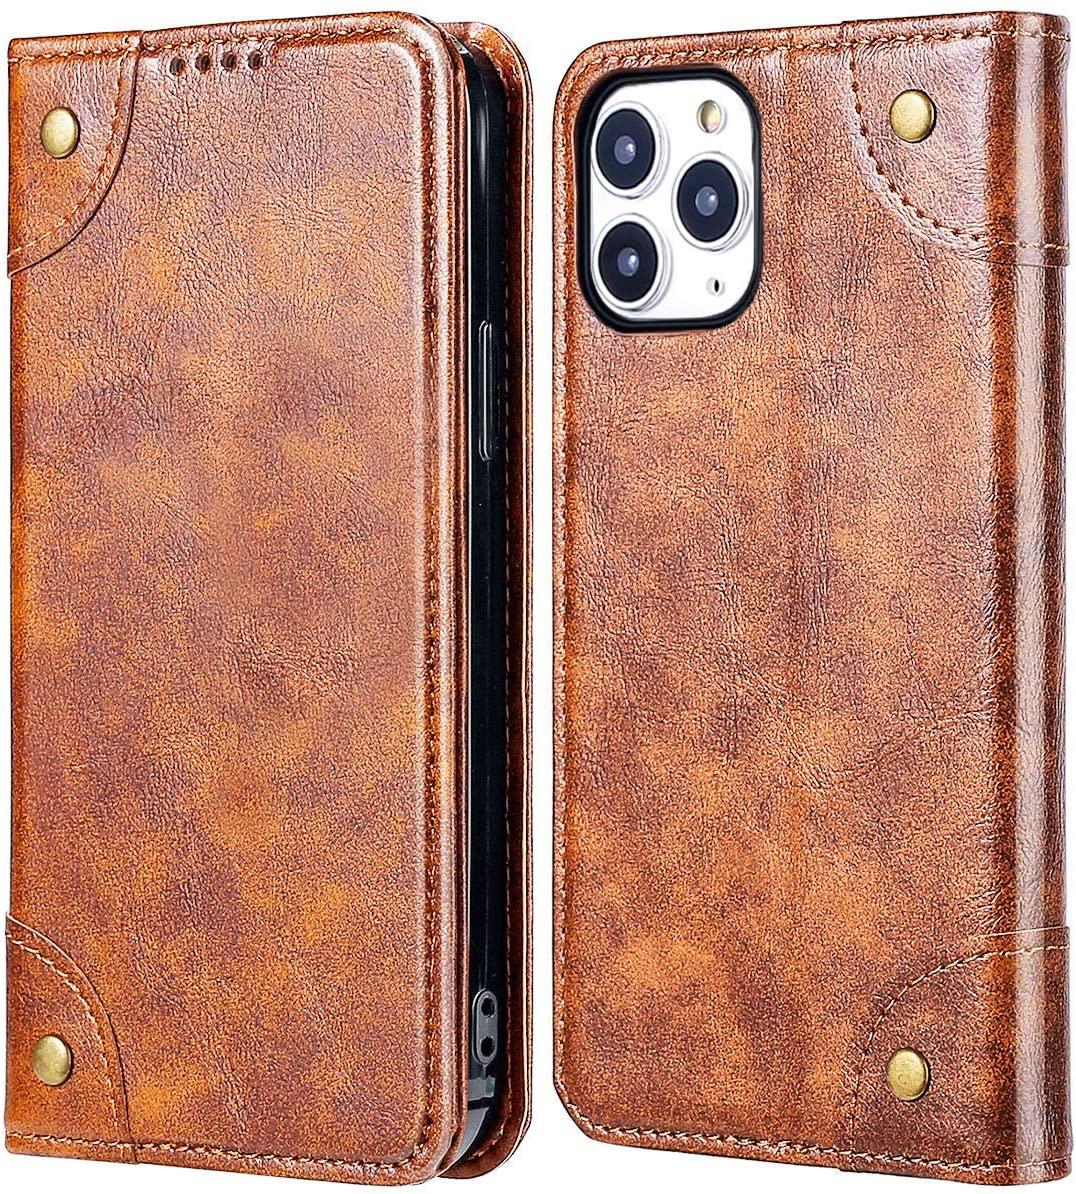 iPhone 12/iPhone 12 Pro Wallet Case, KelaSip Folio Flip Magnetic Leather Cover with Kickstand and Credit Slots for iPhone 12/iPhone 12 Pro 6.1 inch 2020(Khaki)